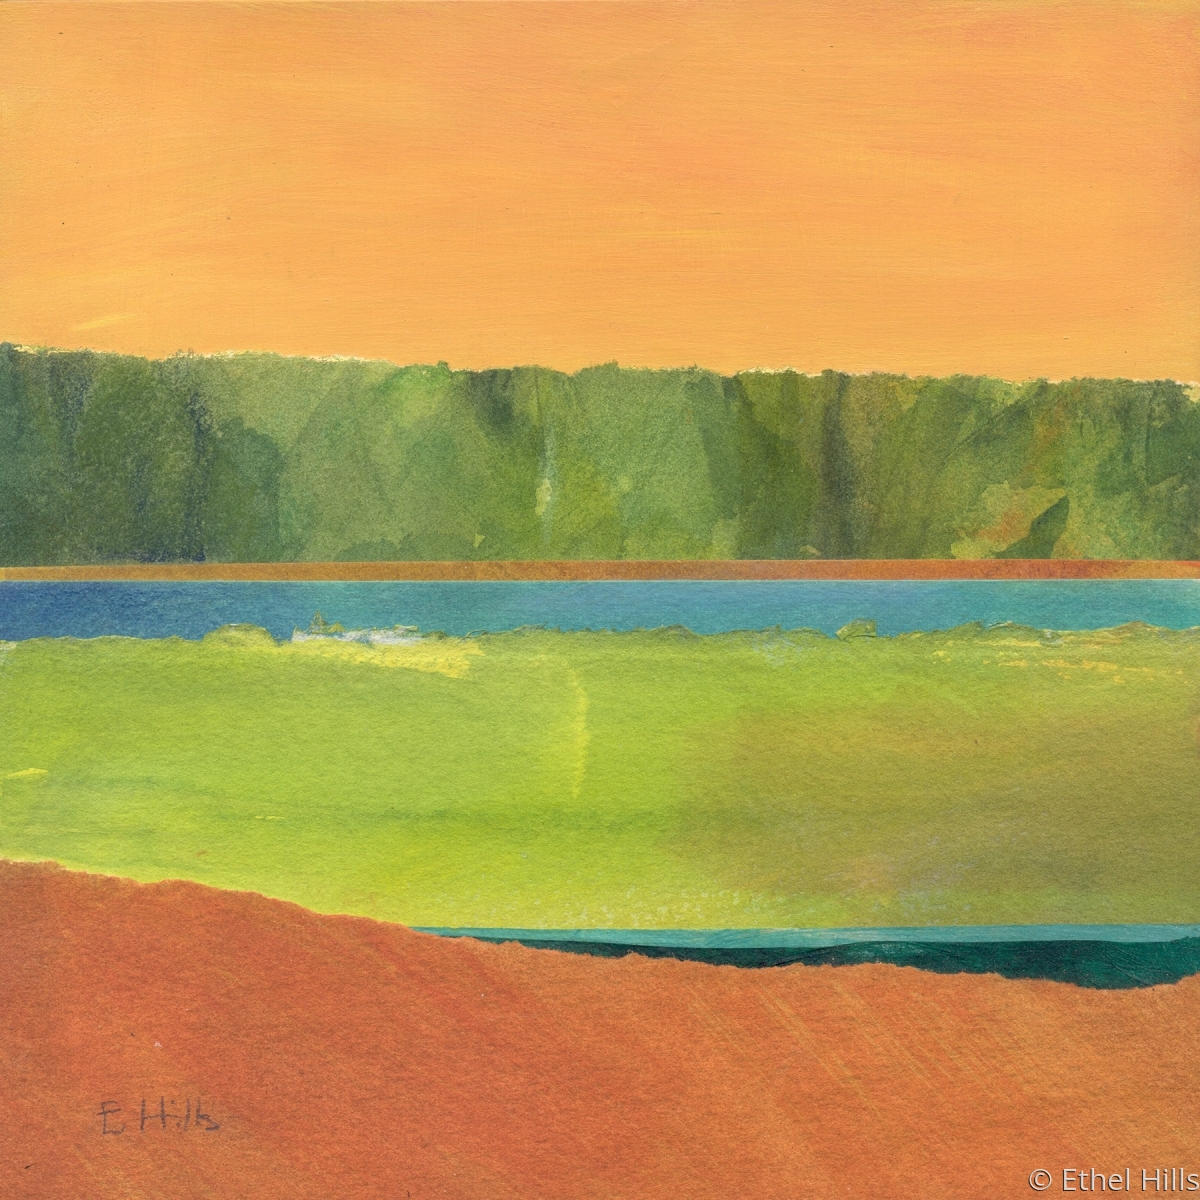 """Ethel Hills - """"Color Block #1 - 8"""" panel"""". Semi-abstract painting of the salt marsh using collage in orange and green.  (large view)"""